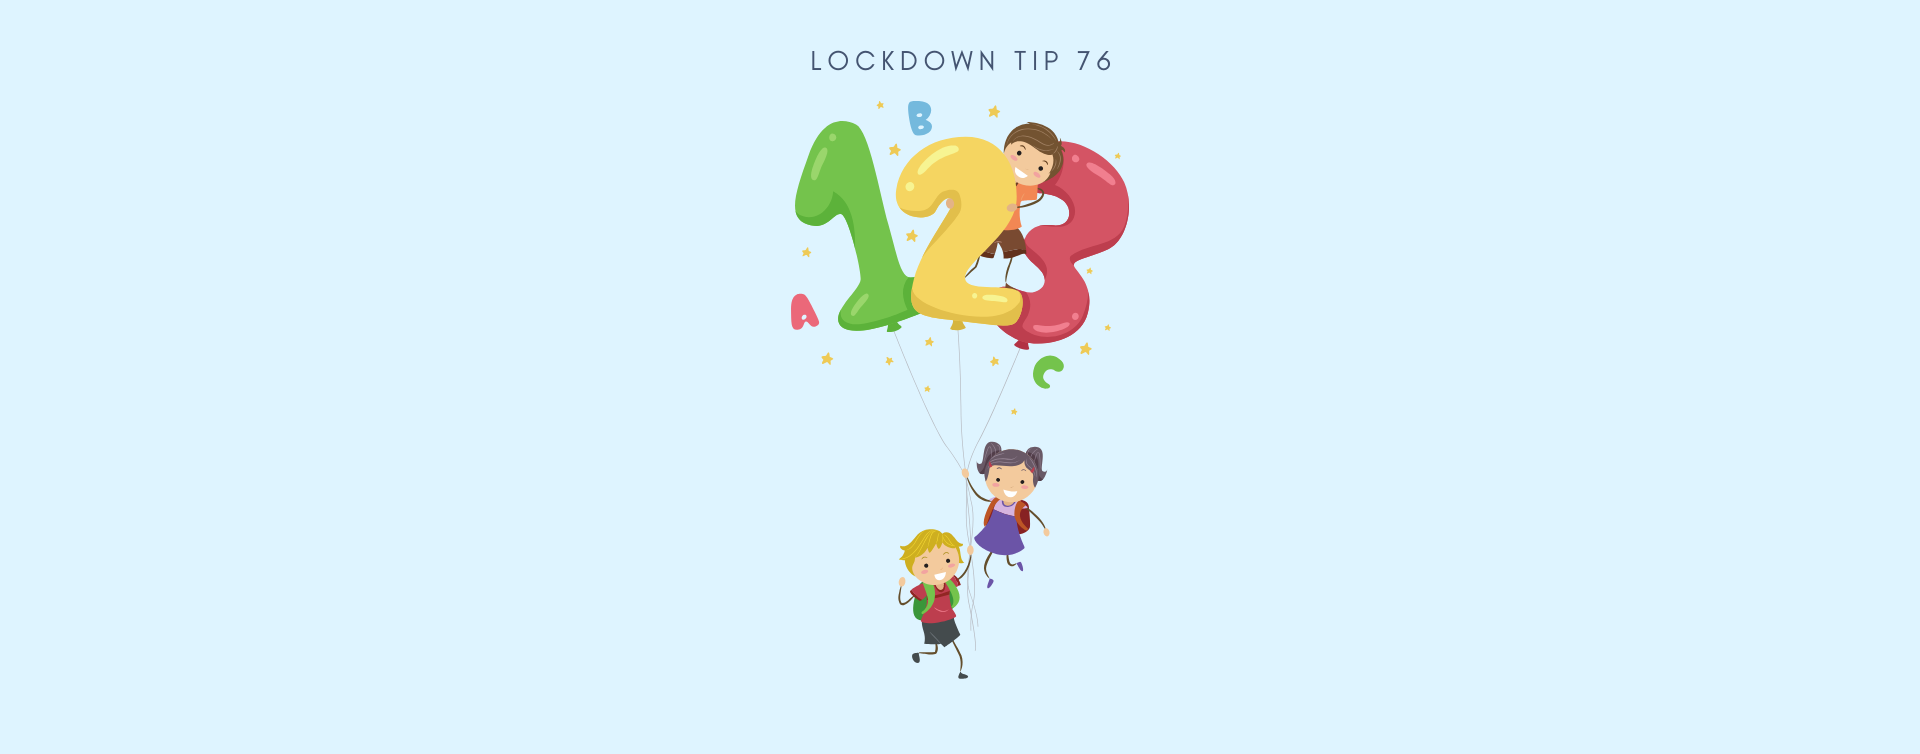 MCSA Lockdown Tip 76